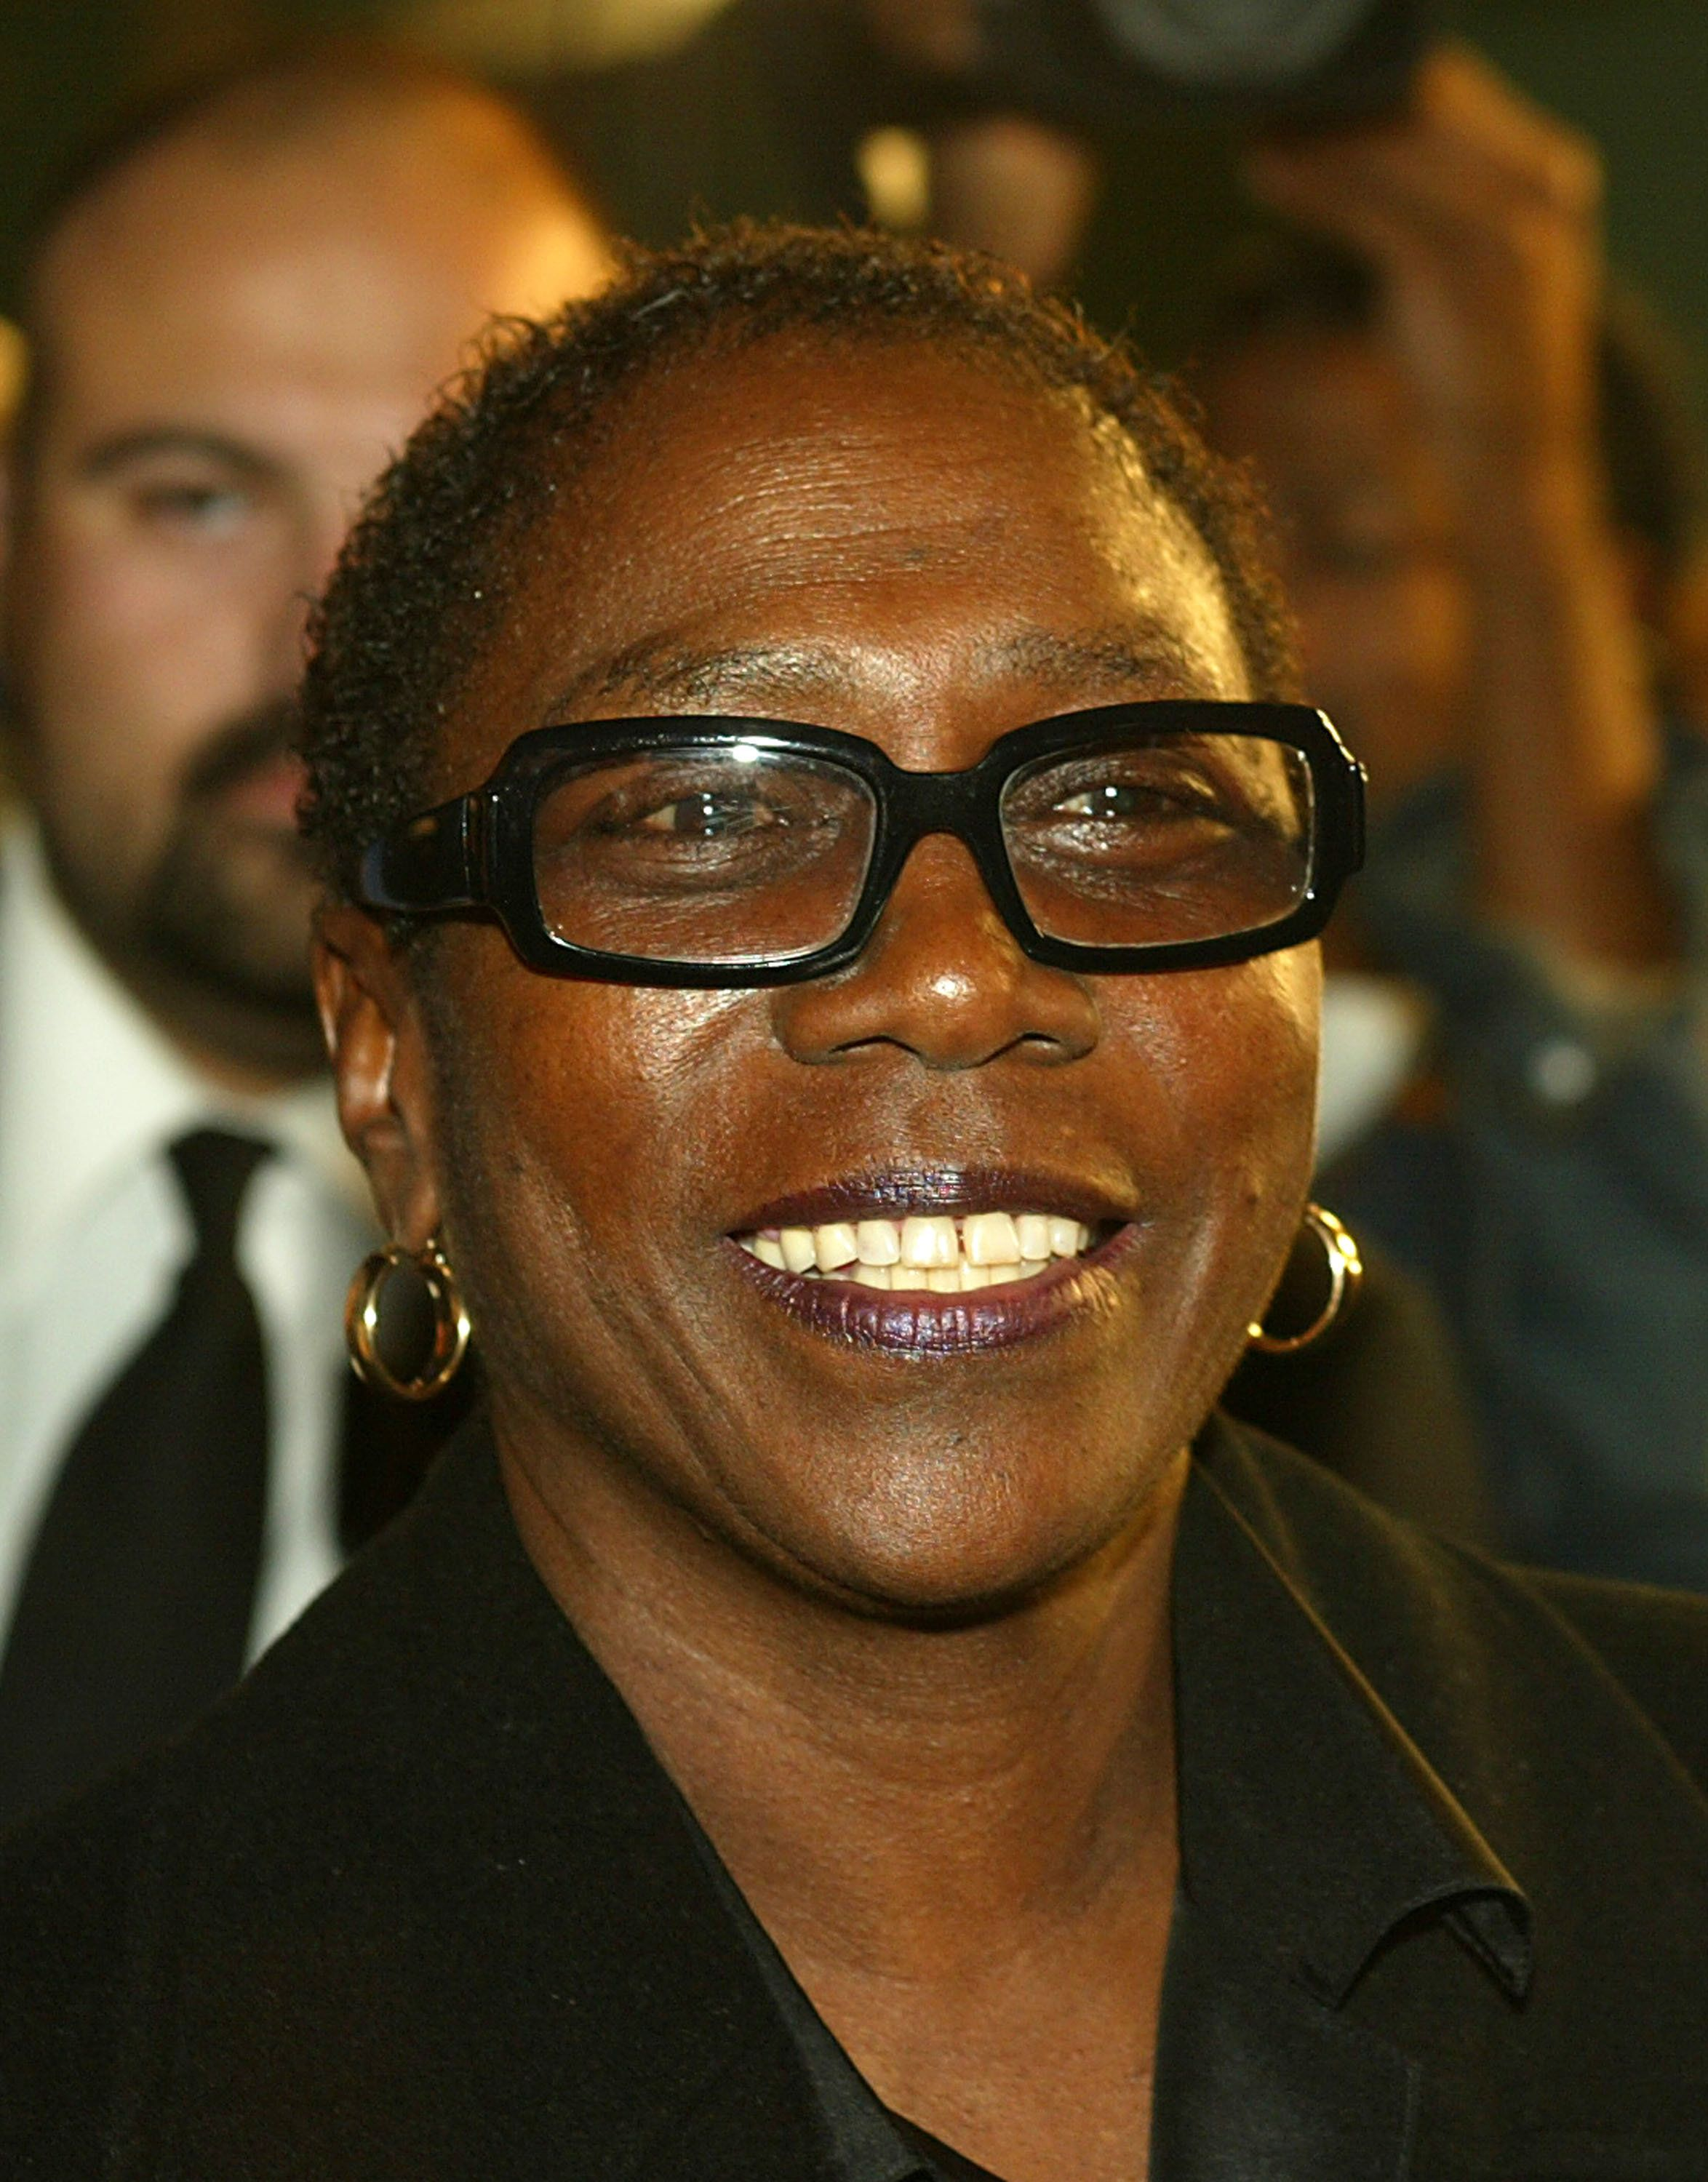 HOLLYWOOD - NOVEMBER 4:  Producer Afeni Shakur attends the film premiere of 'Tupac Resurrection' at the Cinerama Dome Theater on November 4, 2003 in  Hollywood, California.  (Photo by Kevin Winter/Getty Images)